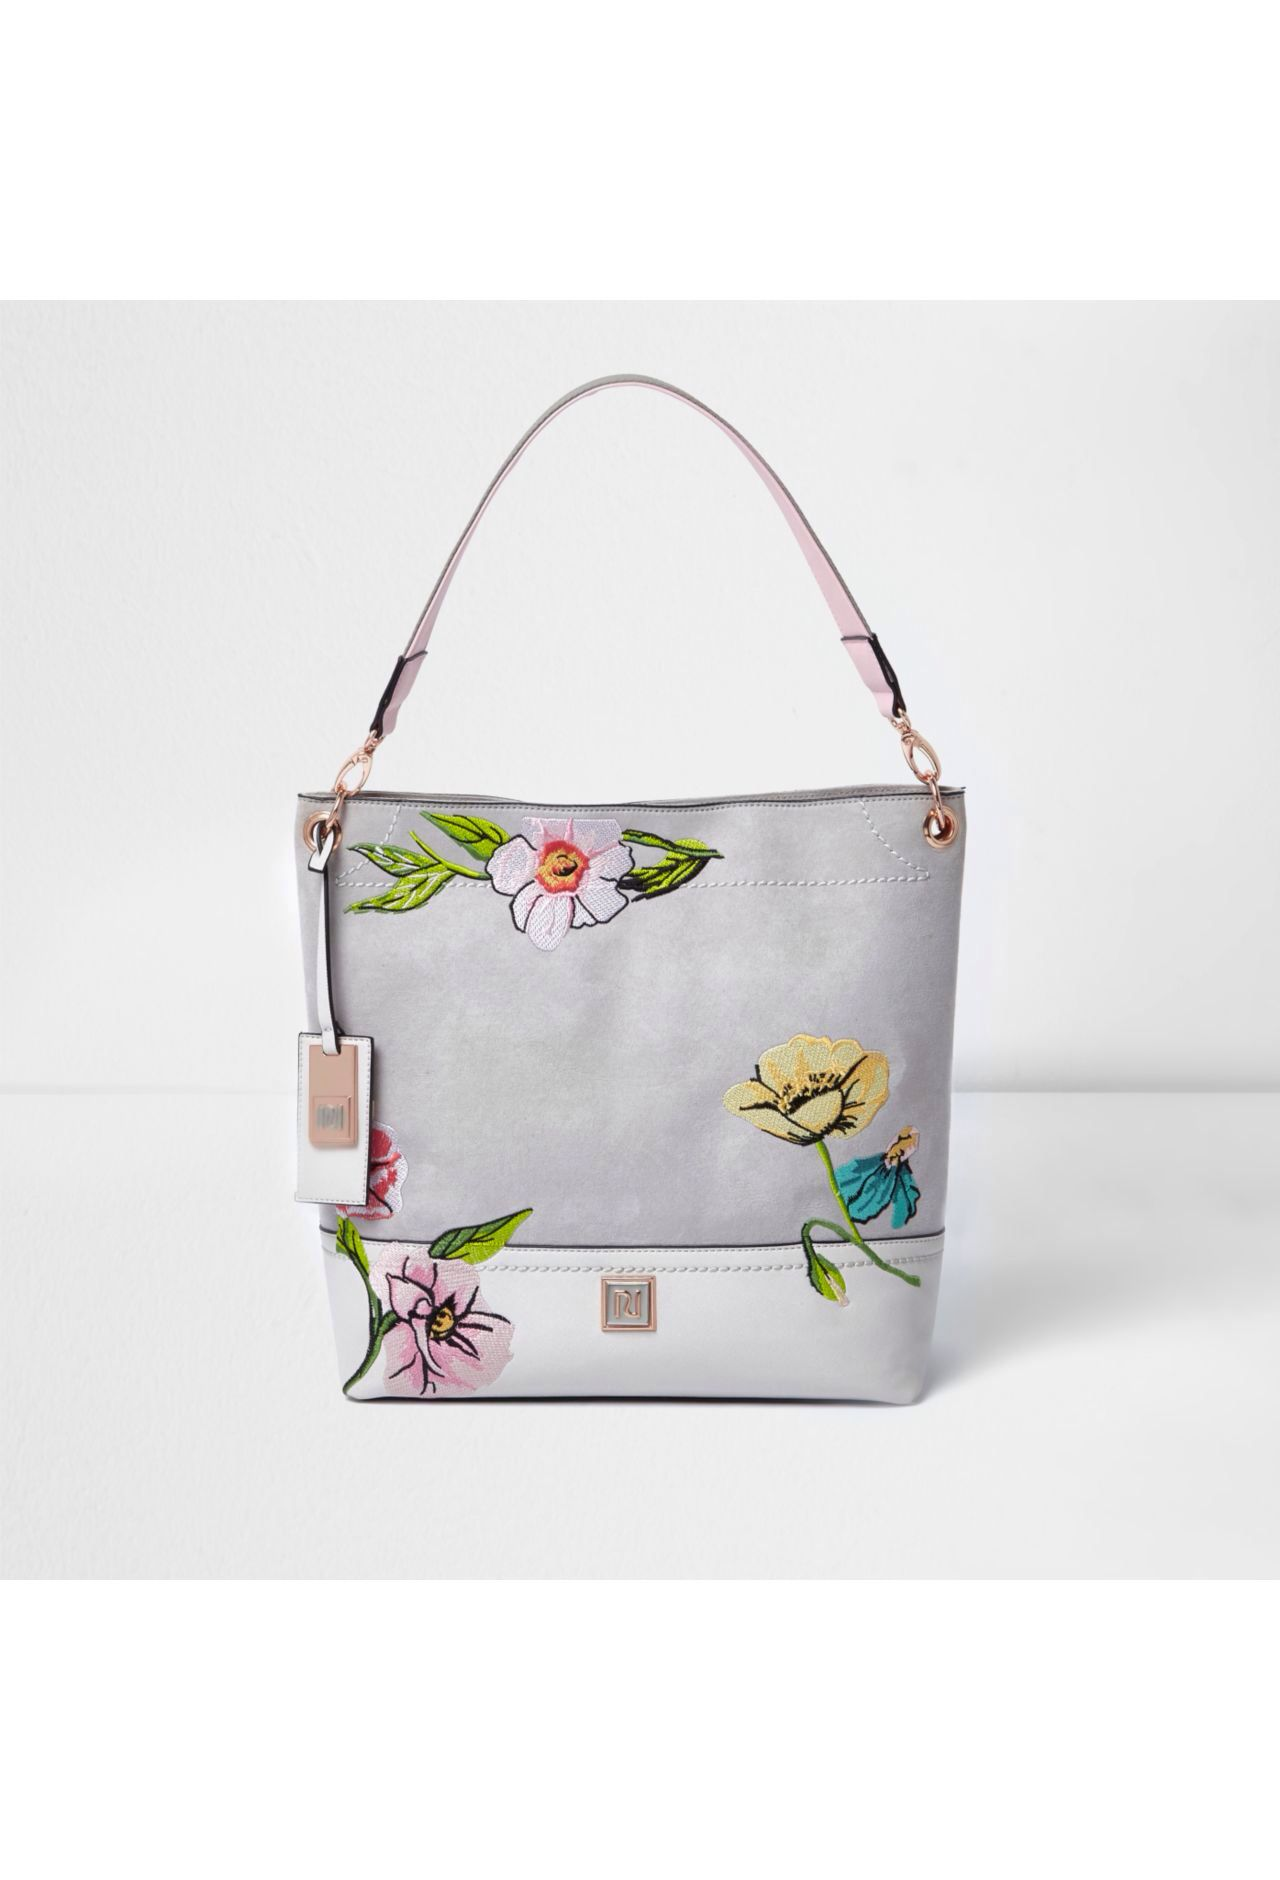 2fe4e8cfada7 Checkout this Grey floral embroidered slouch bag from River Island .